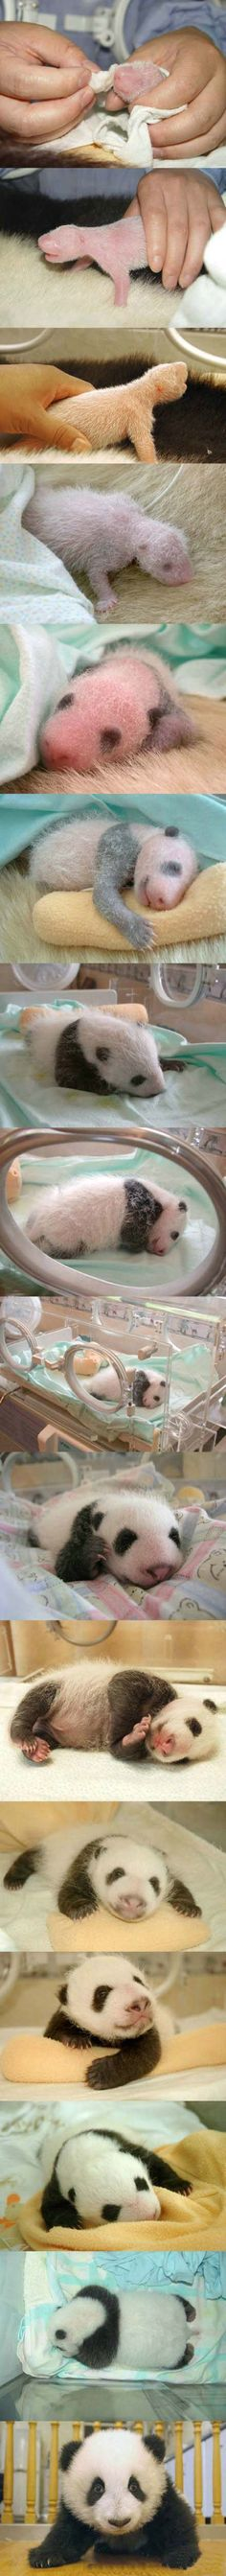 Life is not easy, a panda's birth.